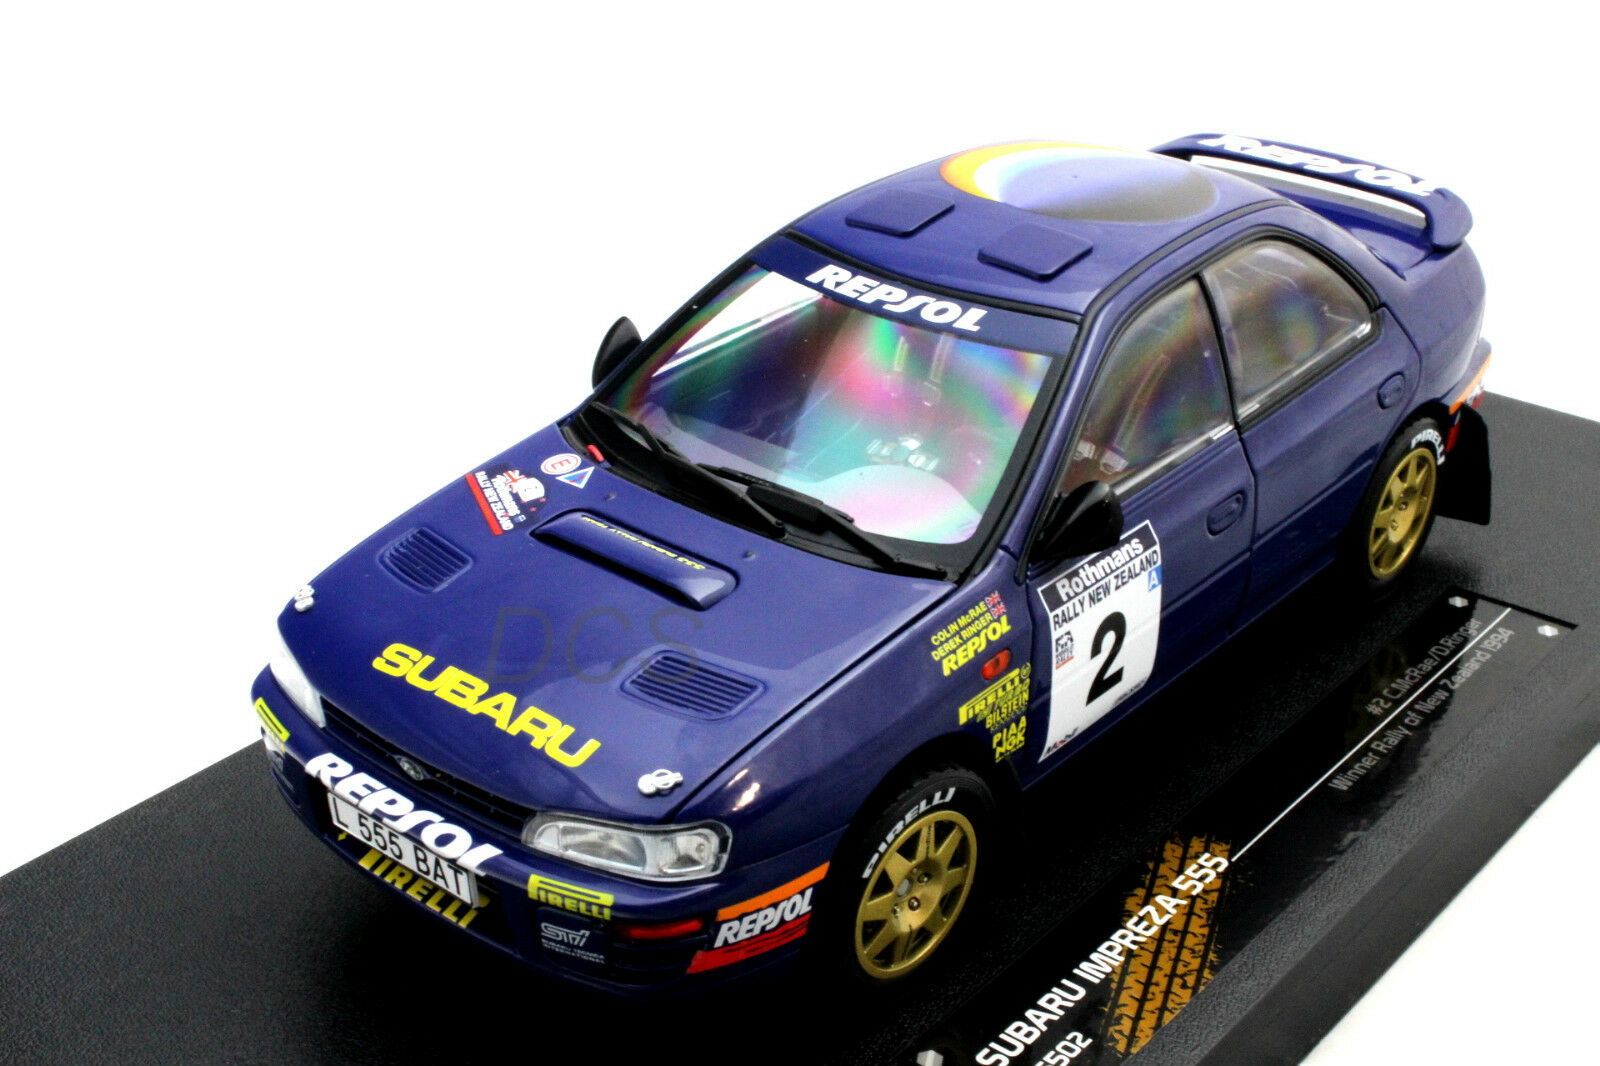 SUNSTAR SUBARU IMPREZA 555 WINNER RALLY OF NEW ZEALAND 1994 1 18 blueE 5502